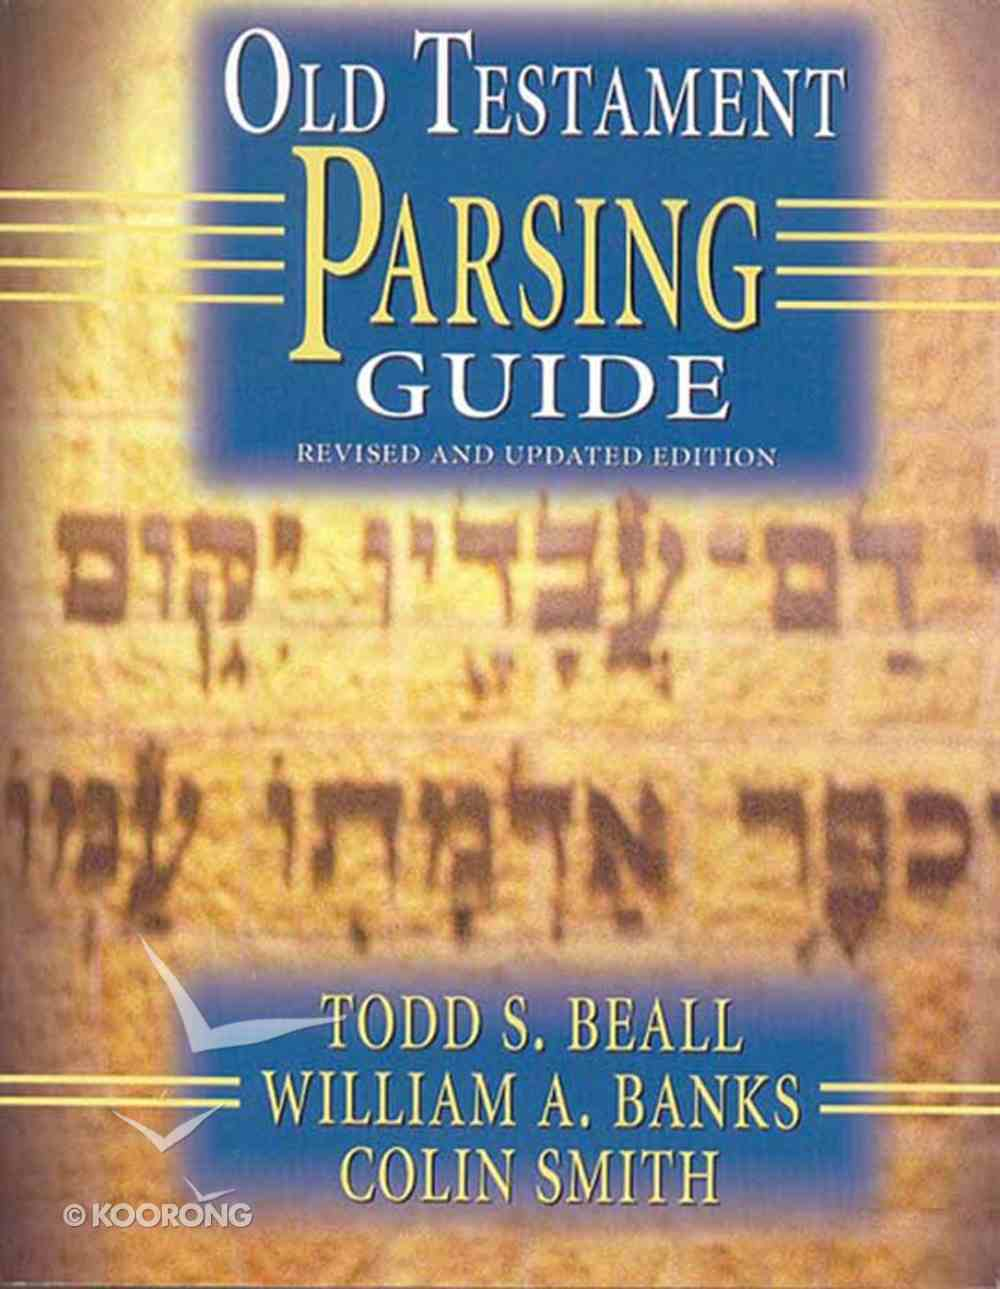 Old Testament Parsing Guide (2000) eBook